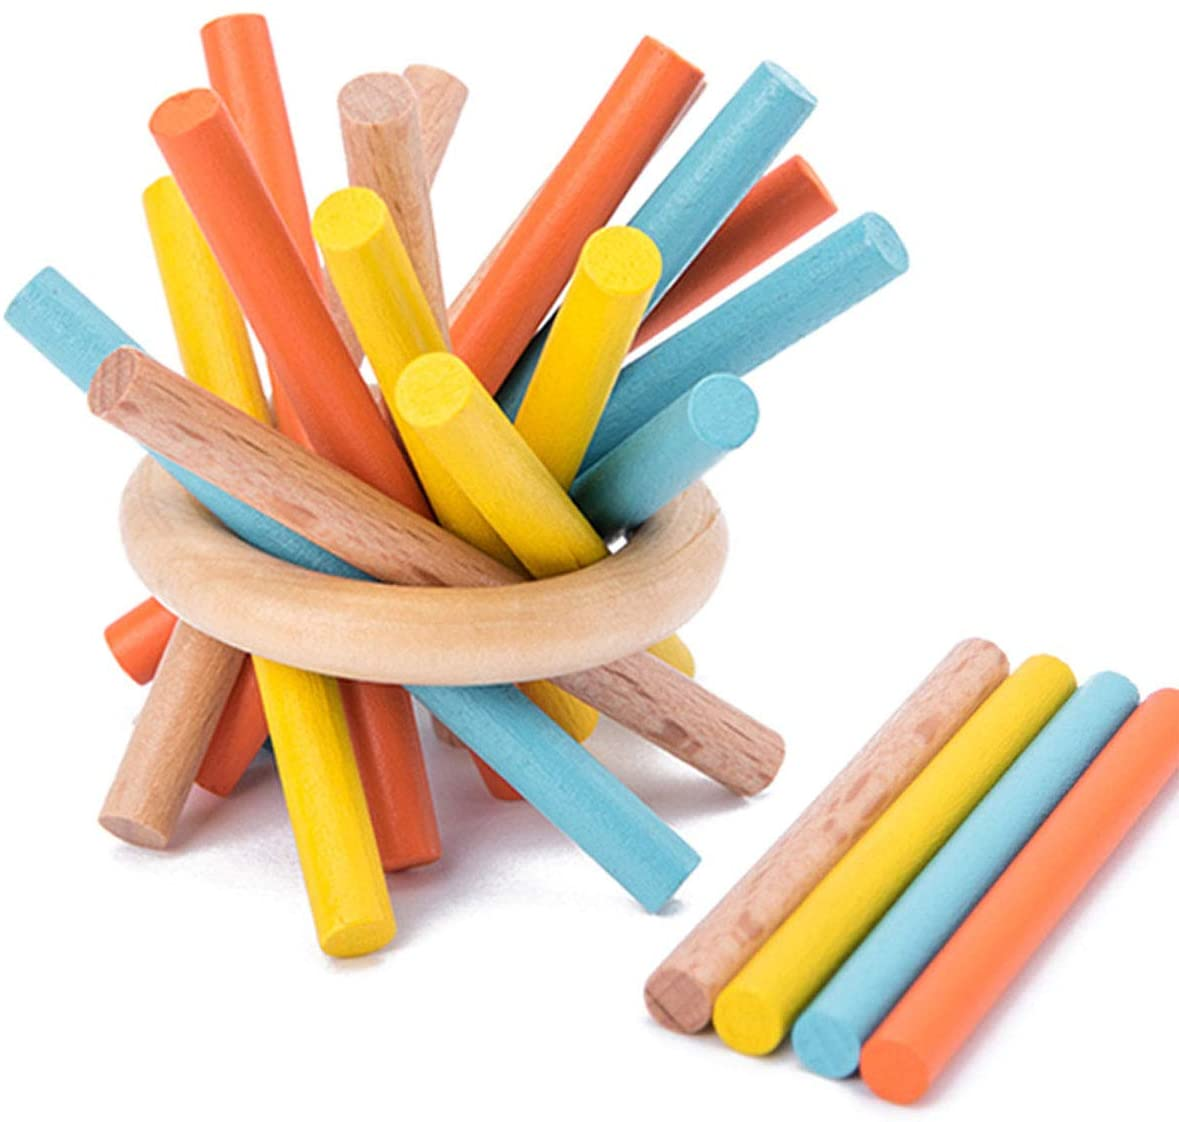 Bienau Pick Up Sticks Game Colorful Classic Wooden Pick Up Sticks Game for Kids and Parents Travel Learning Montessori Toys with Metal Case (16 PCS)